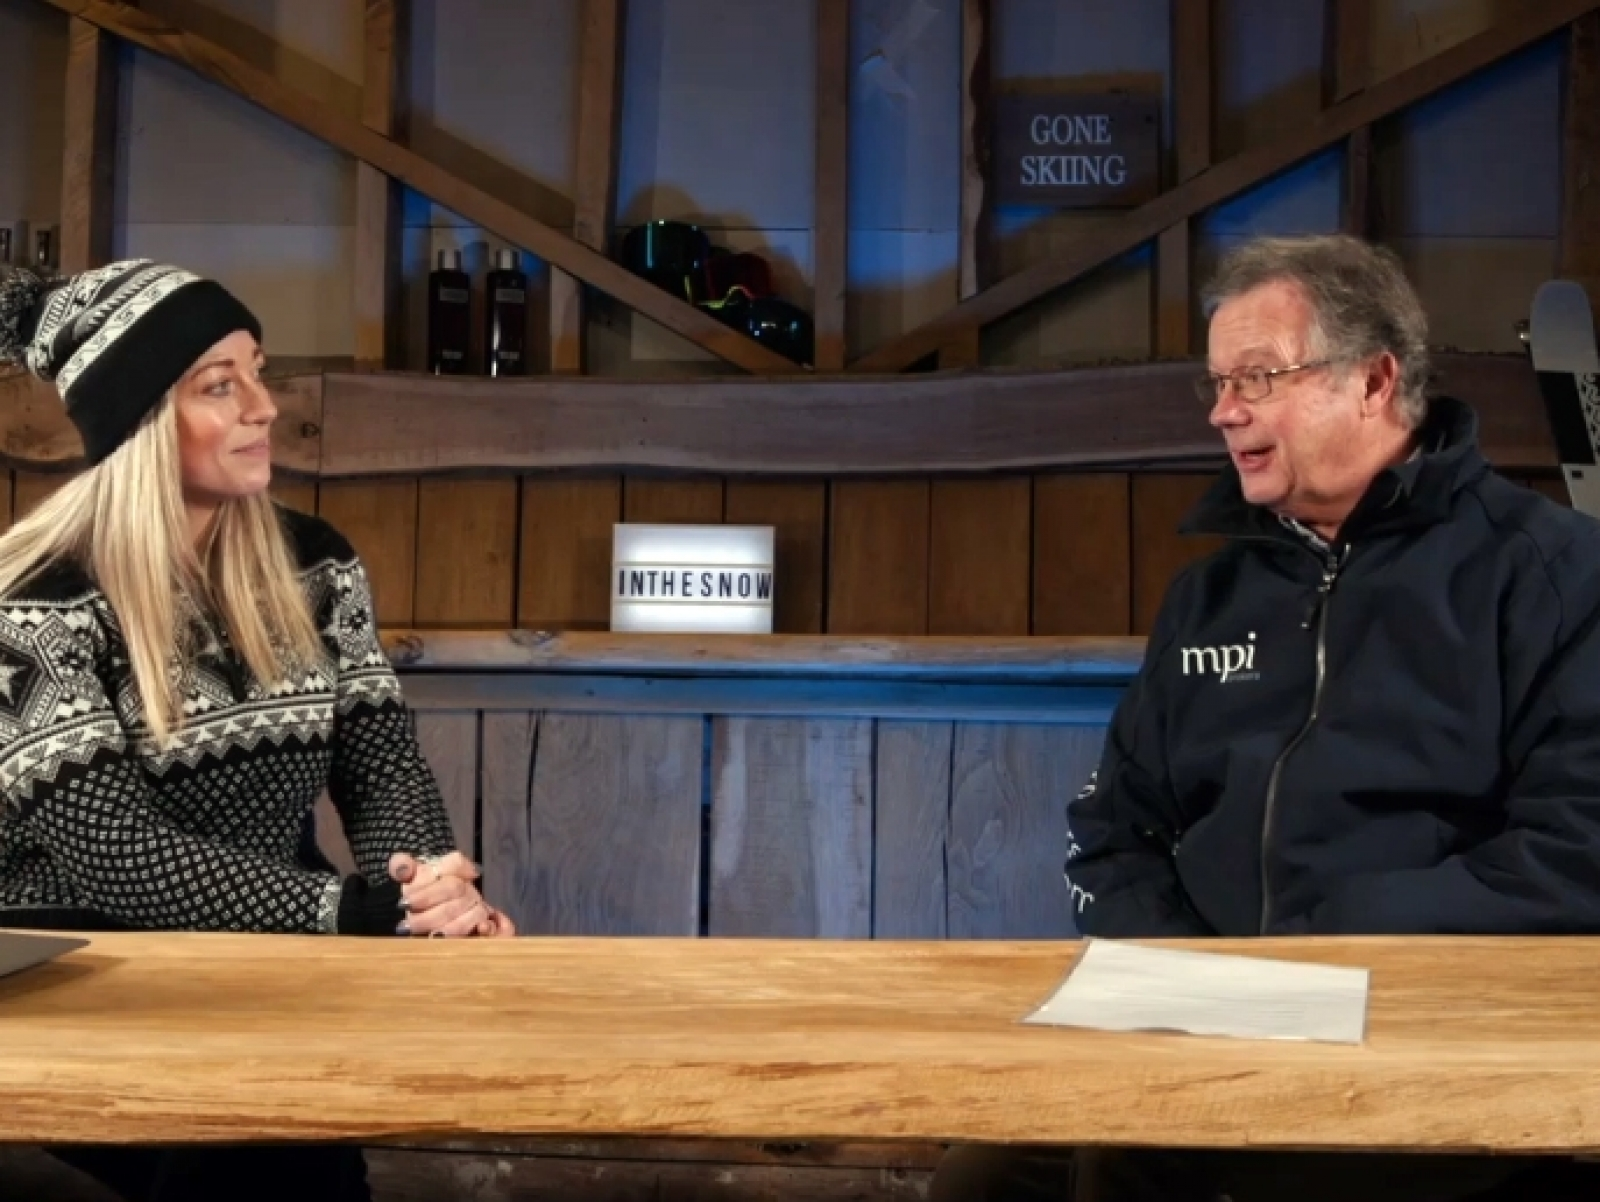 The White Out Interview with the Ski Insurance guru – Michael Pettifer